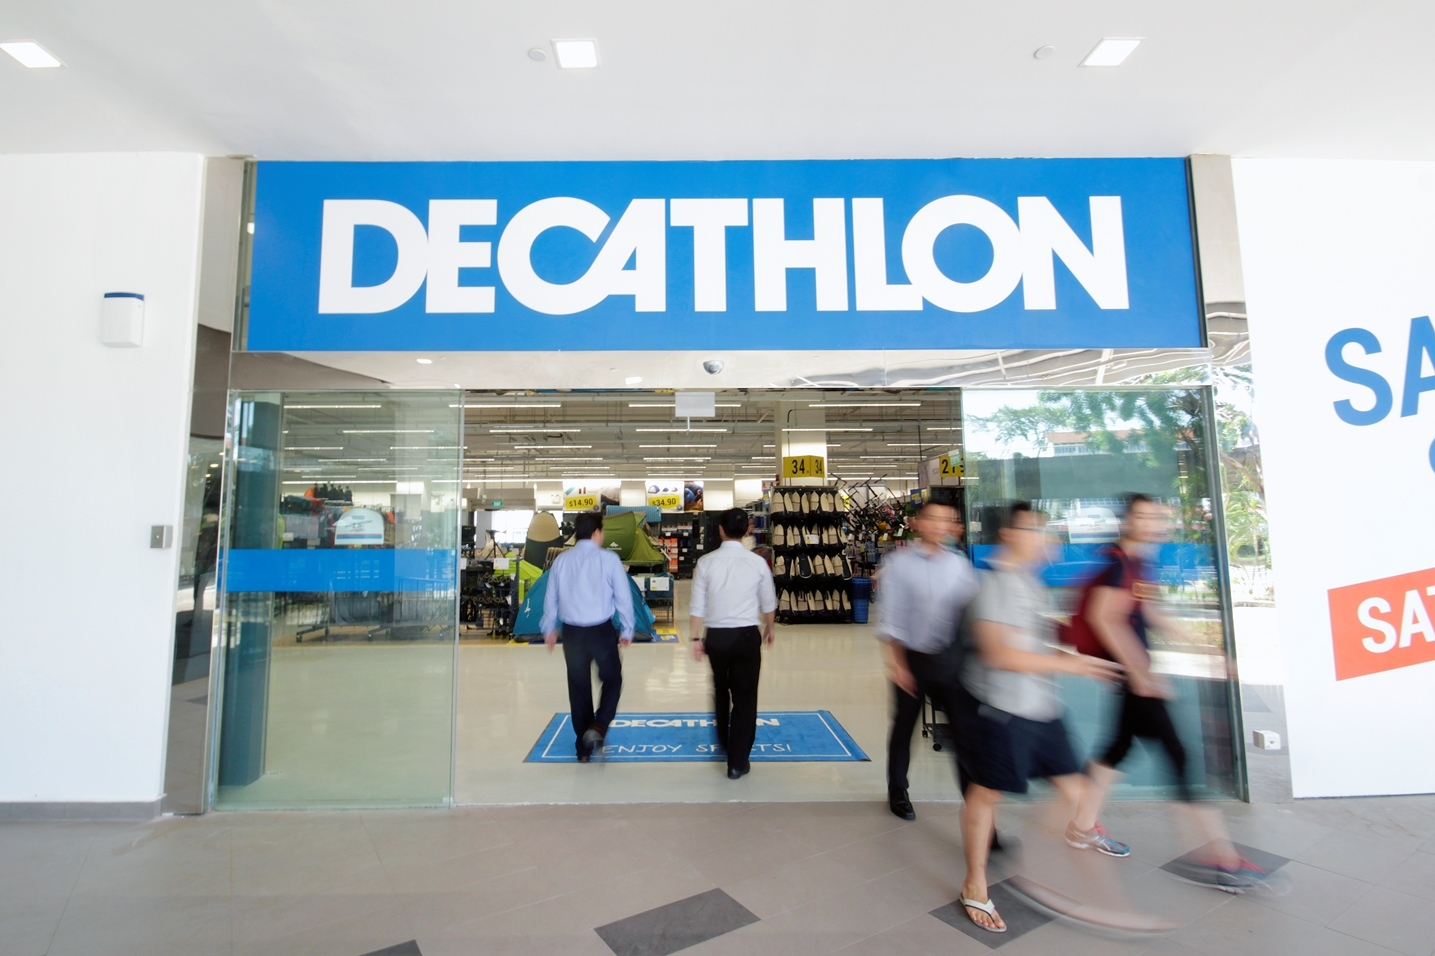 The six most innovative products found at Decathlon